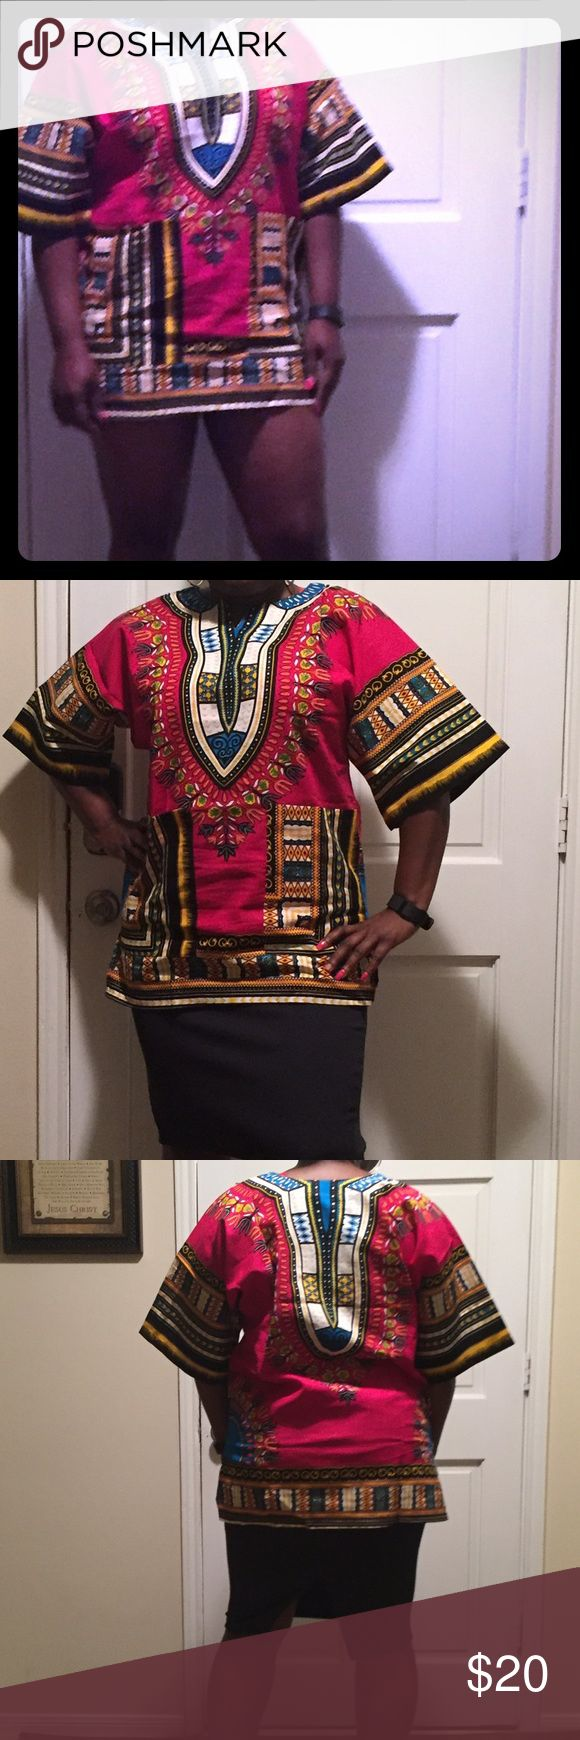 Dashiki adults size. Pink Dashiki adult size one size fit all Tops